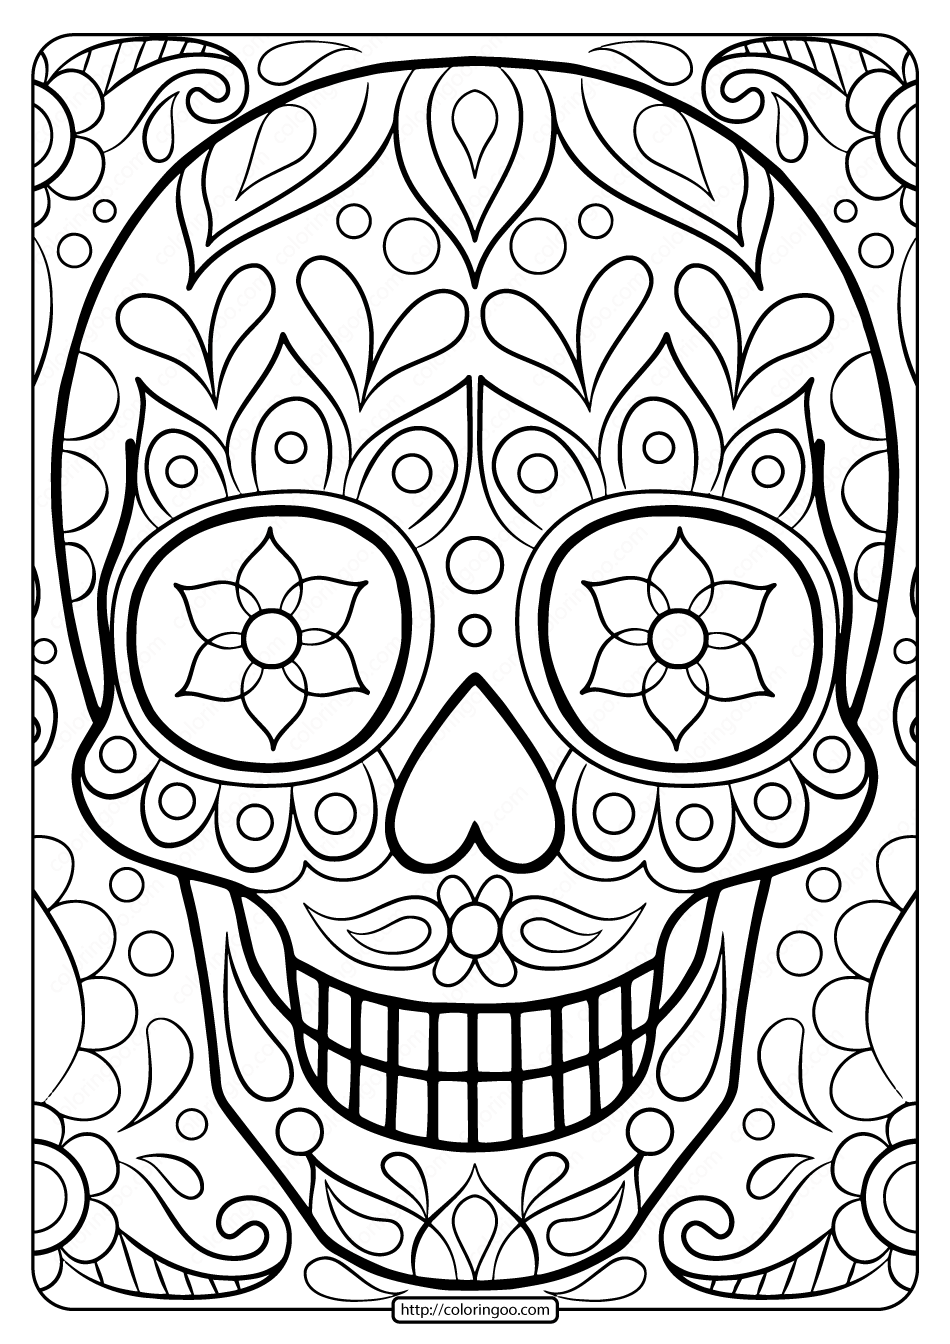 26+ Day of the dead mask coloring page HD